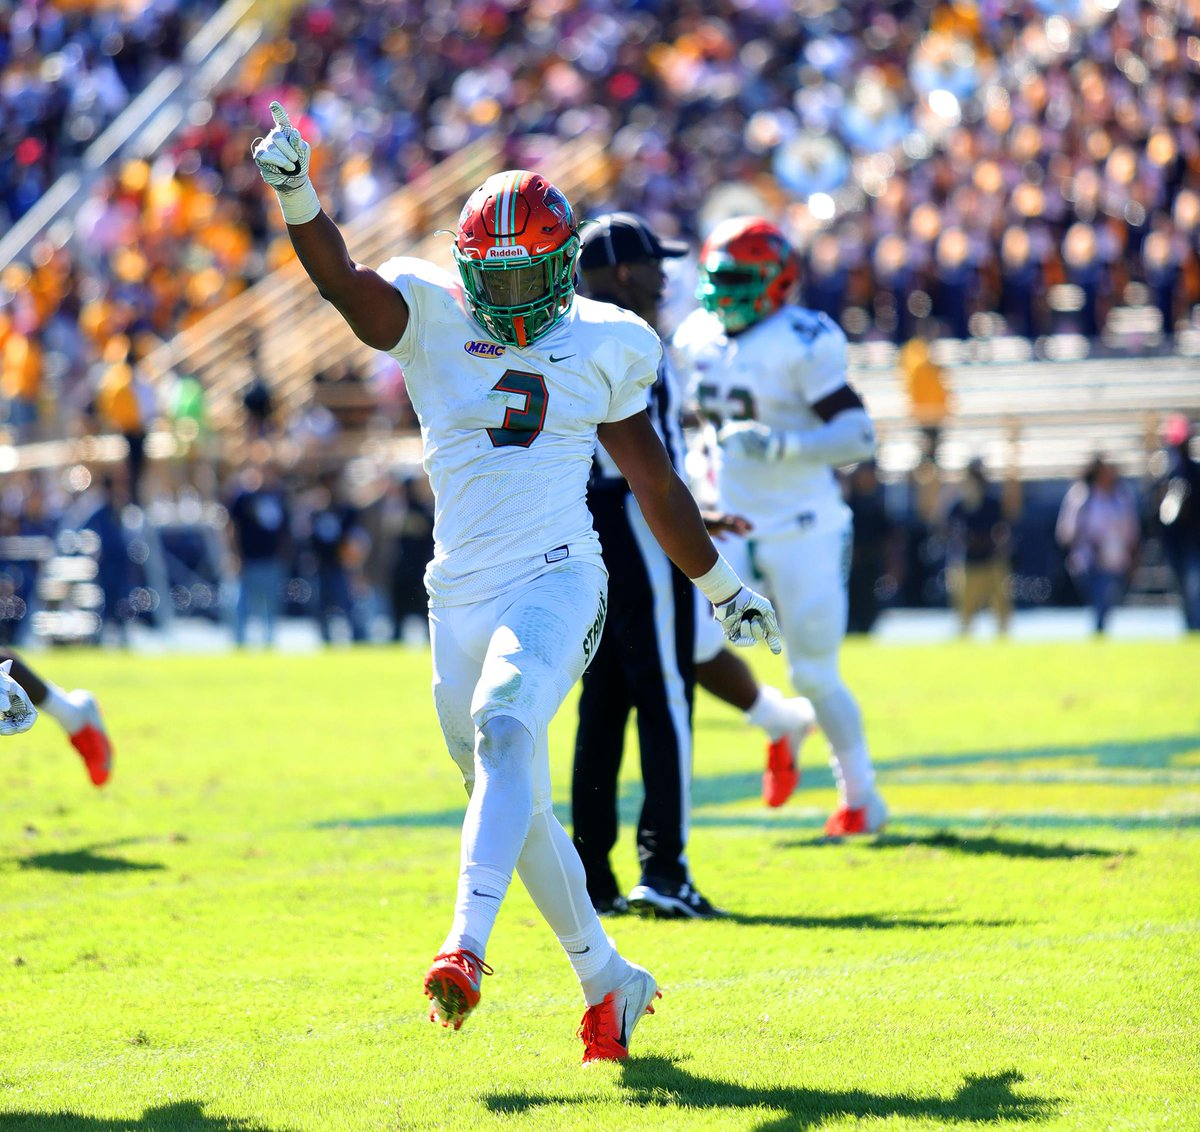 That #FridayFeeling when the @ncatsuaggies game is still on! See you at Bragg on Oct. 20 at 2 p.m. #FangsUp https://t.co/ouPJcozzG6